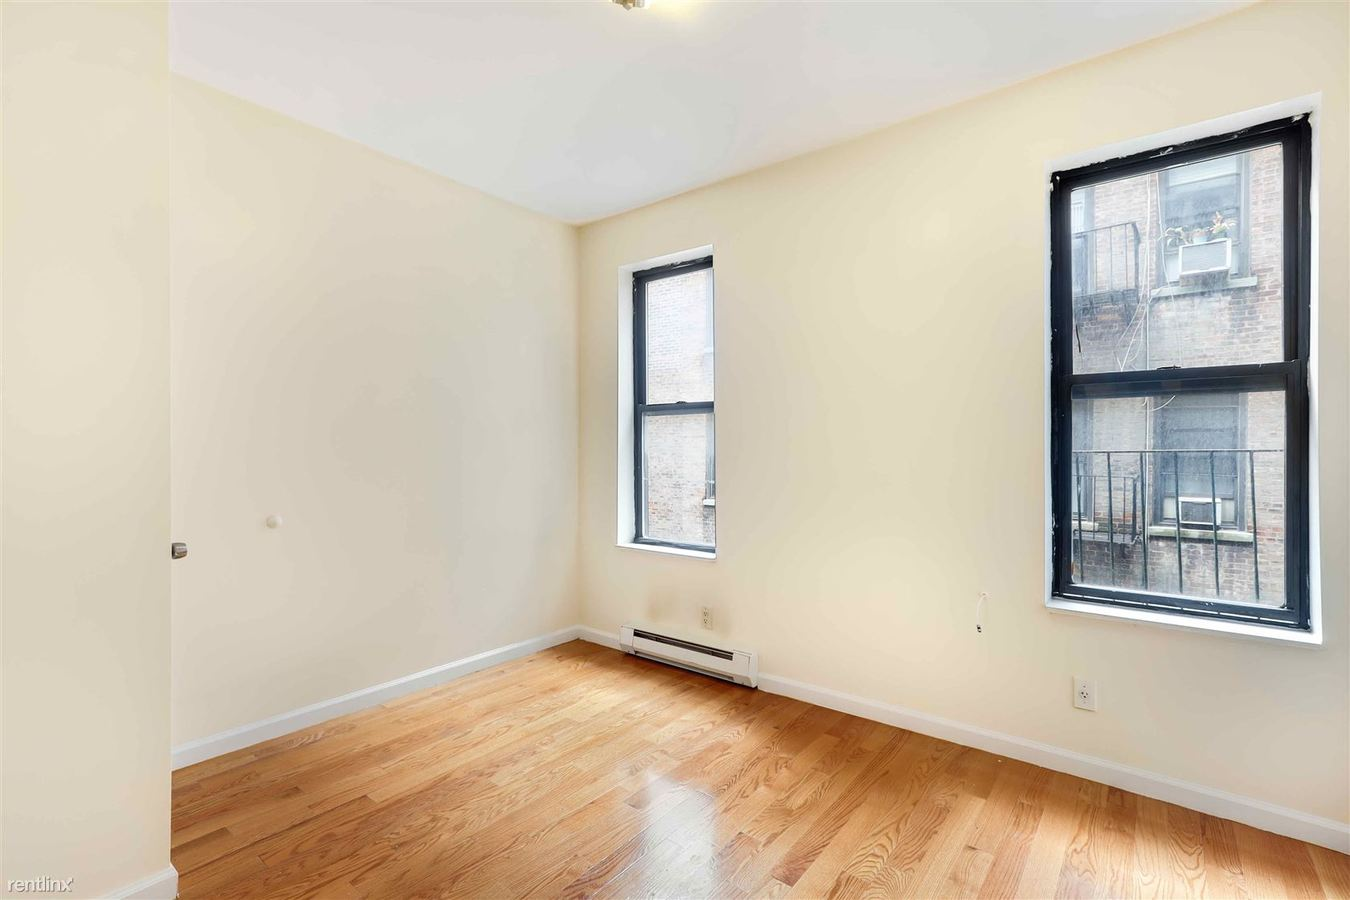 2 Bedrooms 1 Bathroom Apartment for rent at 214 W 109th St 3c in New York, NY